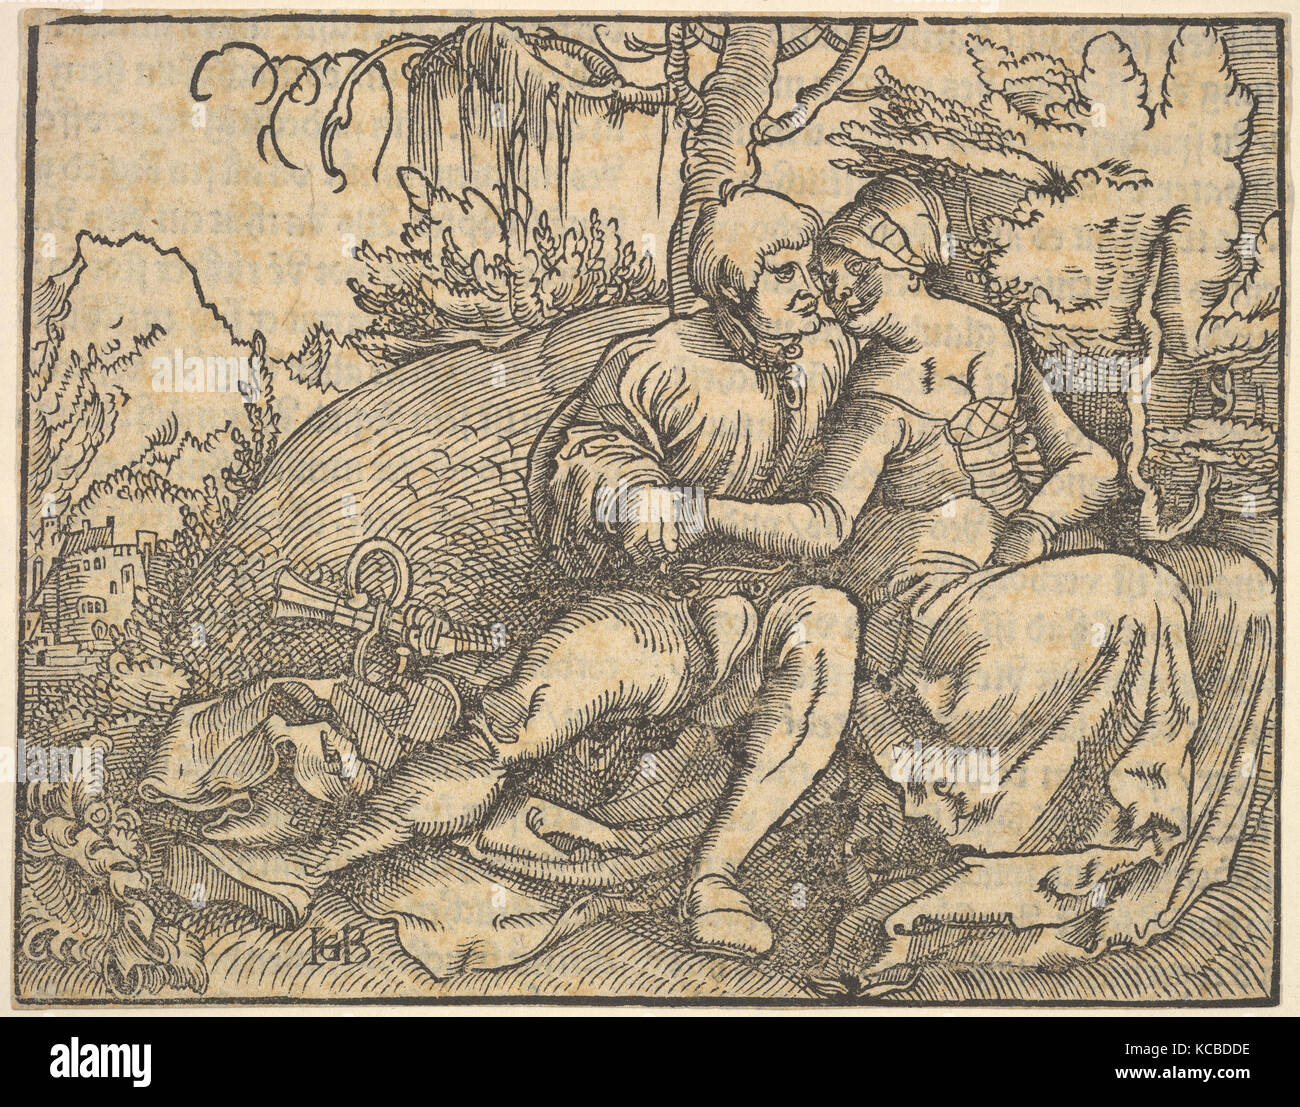 The Sixth Commandment from The Ten Commandments, Hans Baldung - Stock Image